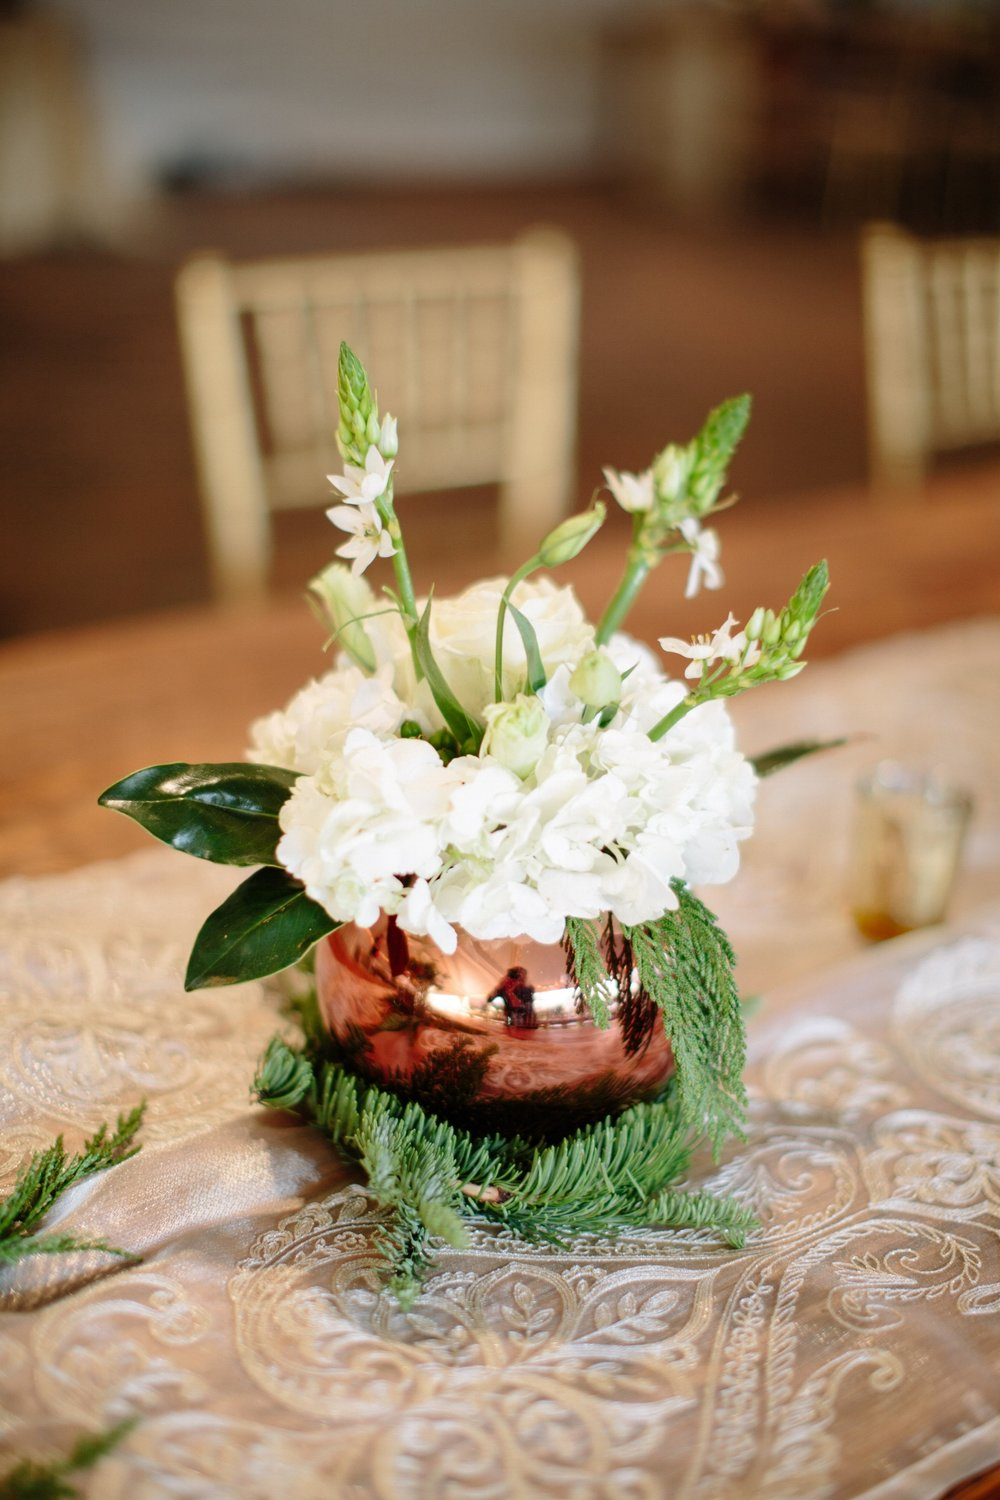 Copper bulb pots filled with winter white florals